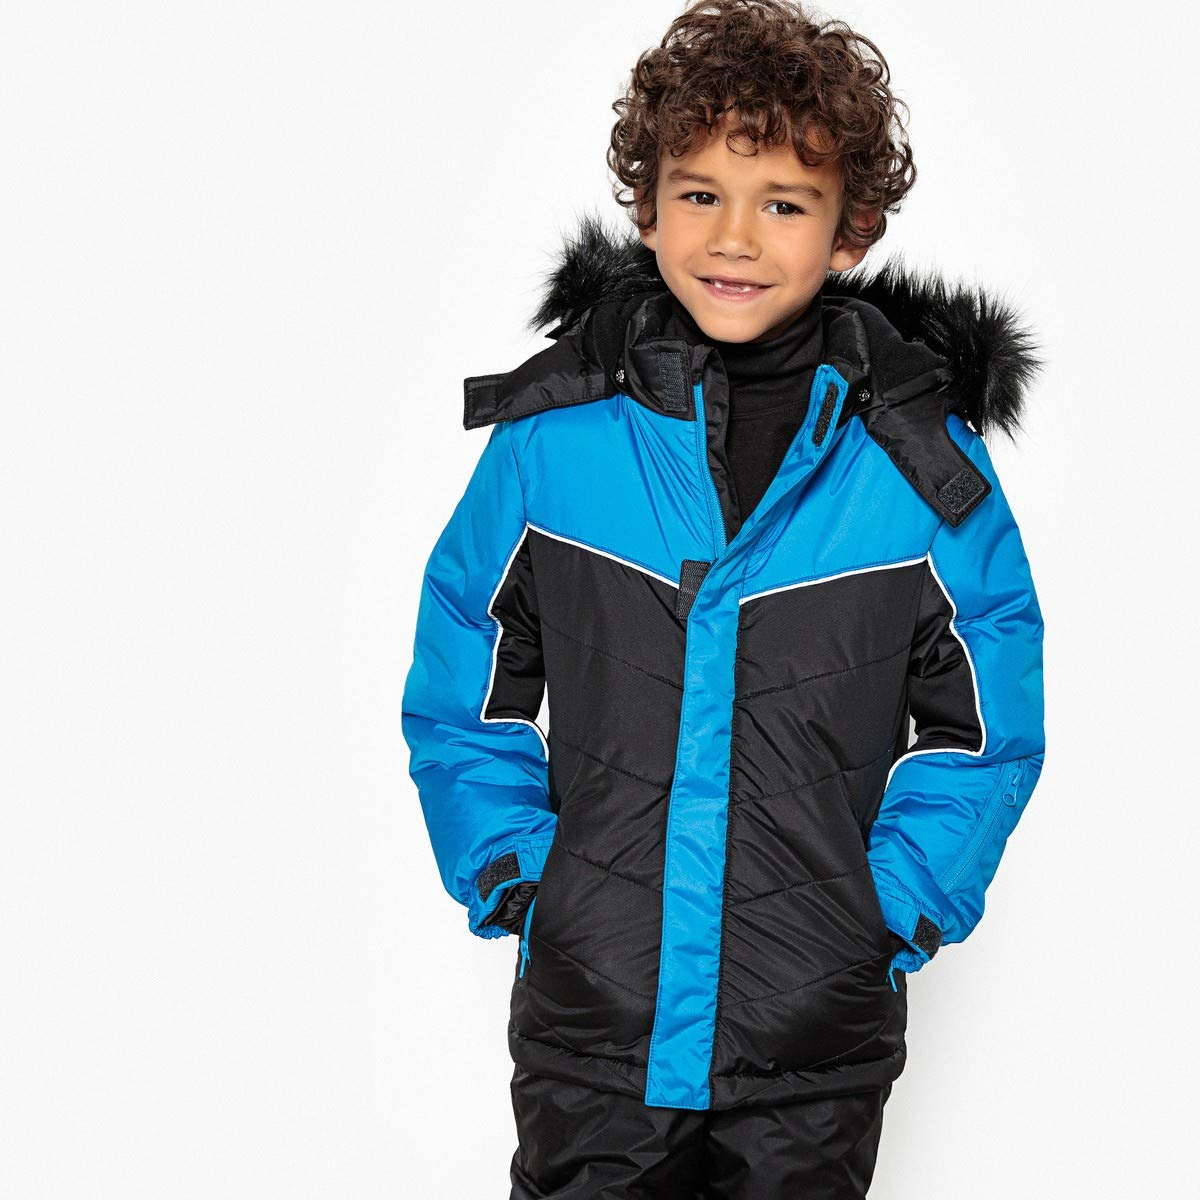 La Redoute Collections Big Boys Ski Jacket, 3-16 Years Blue Size 3 Years by La Redoute (Image #1)